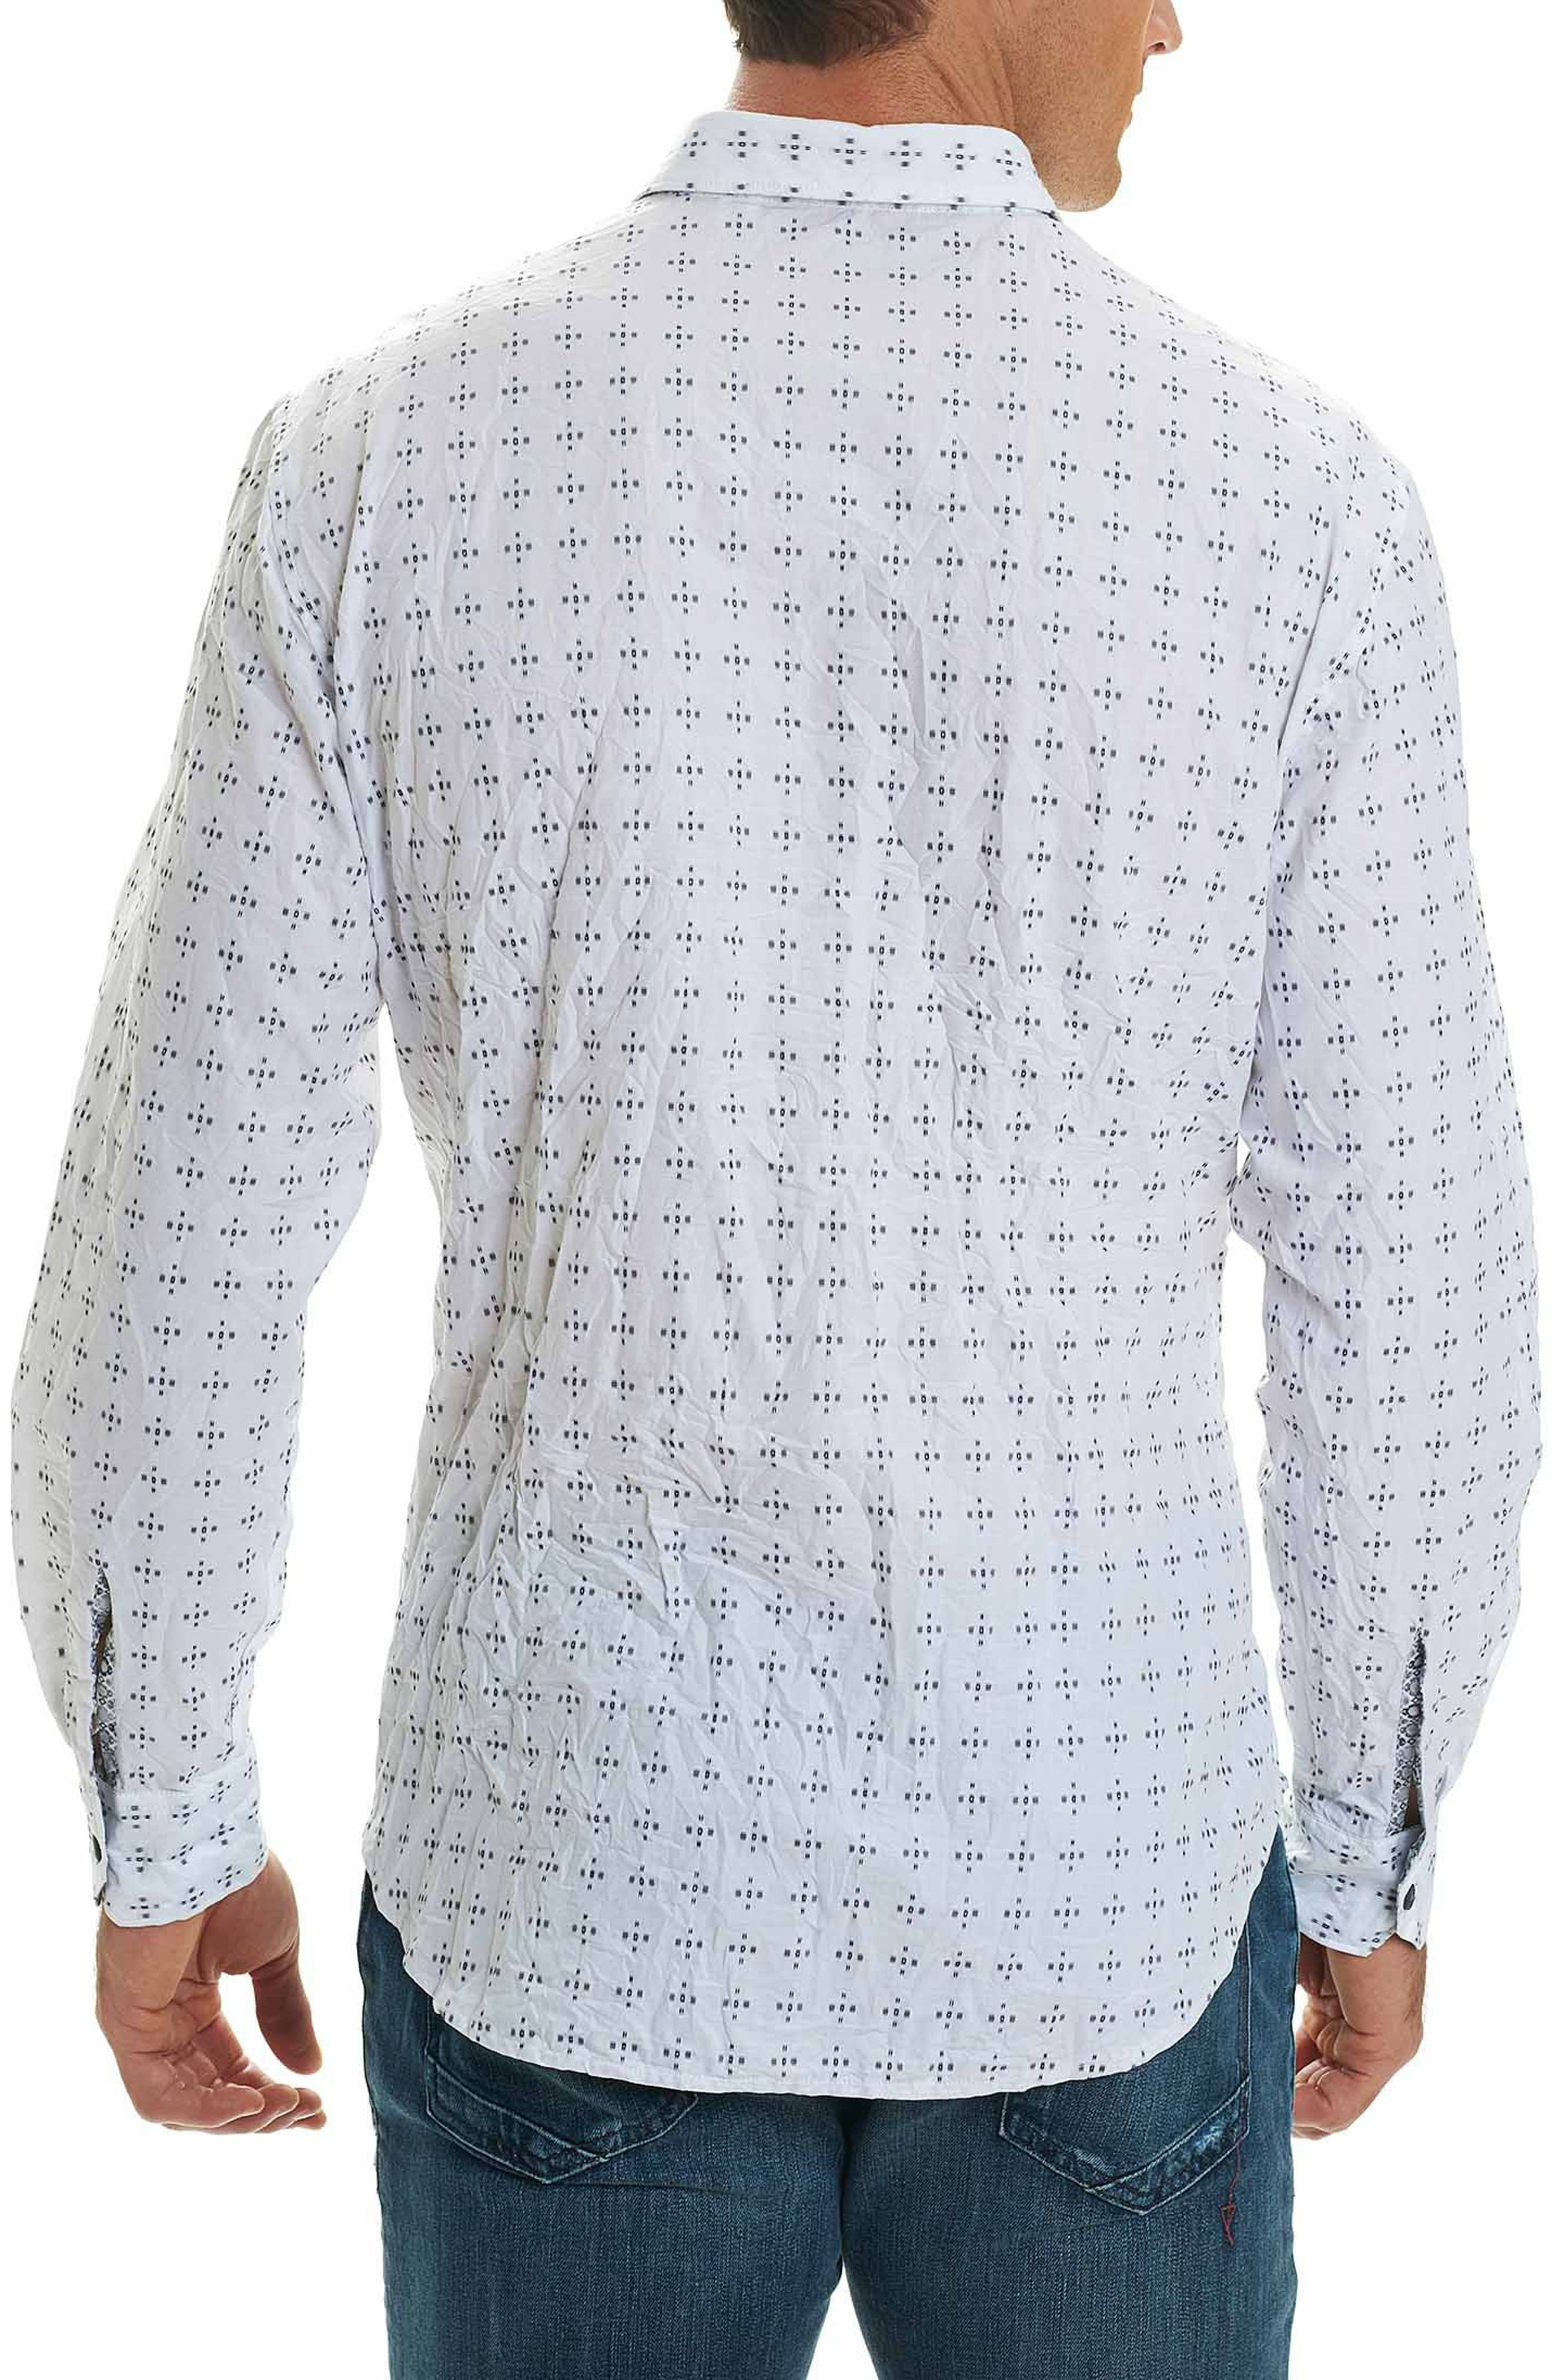 Steger Classic Fit Print Sport Shirt,                             Alternate thumbnail 2, color,                             100